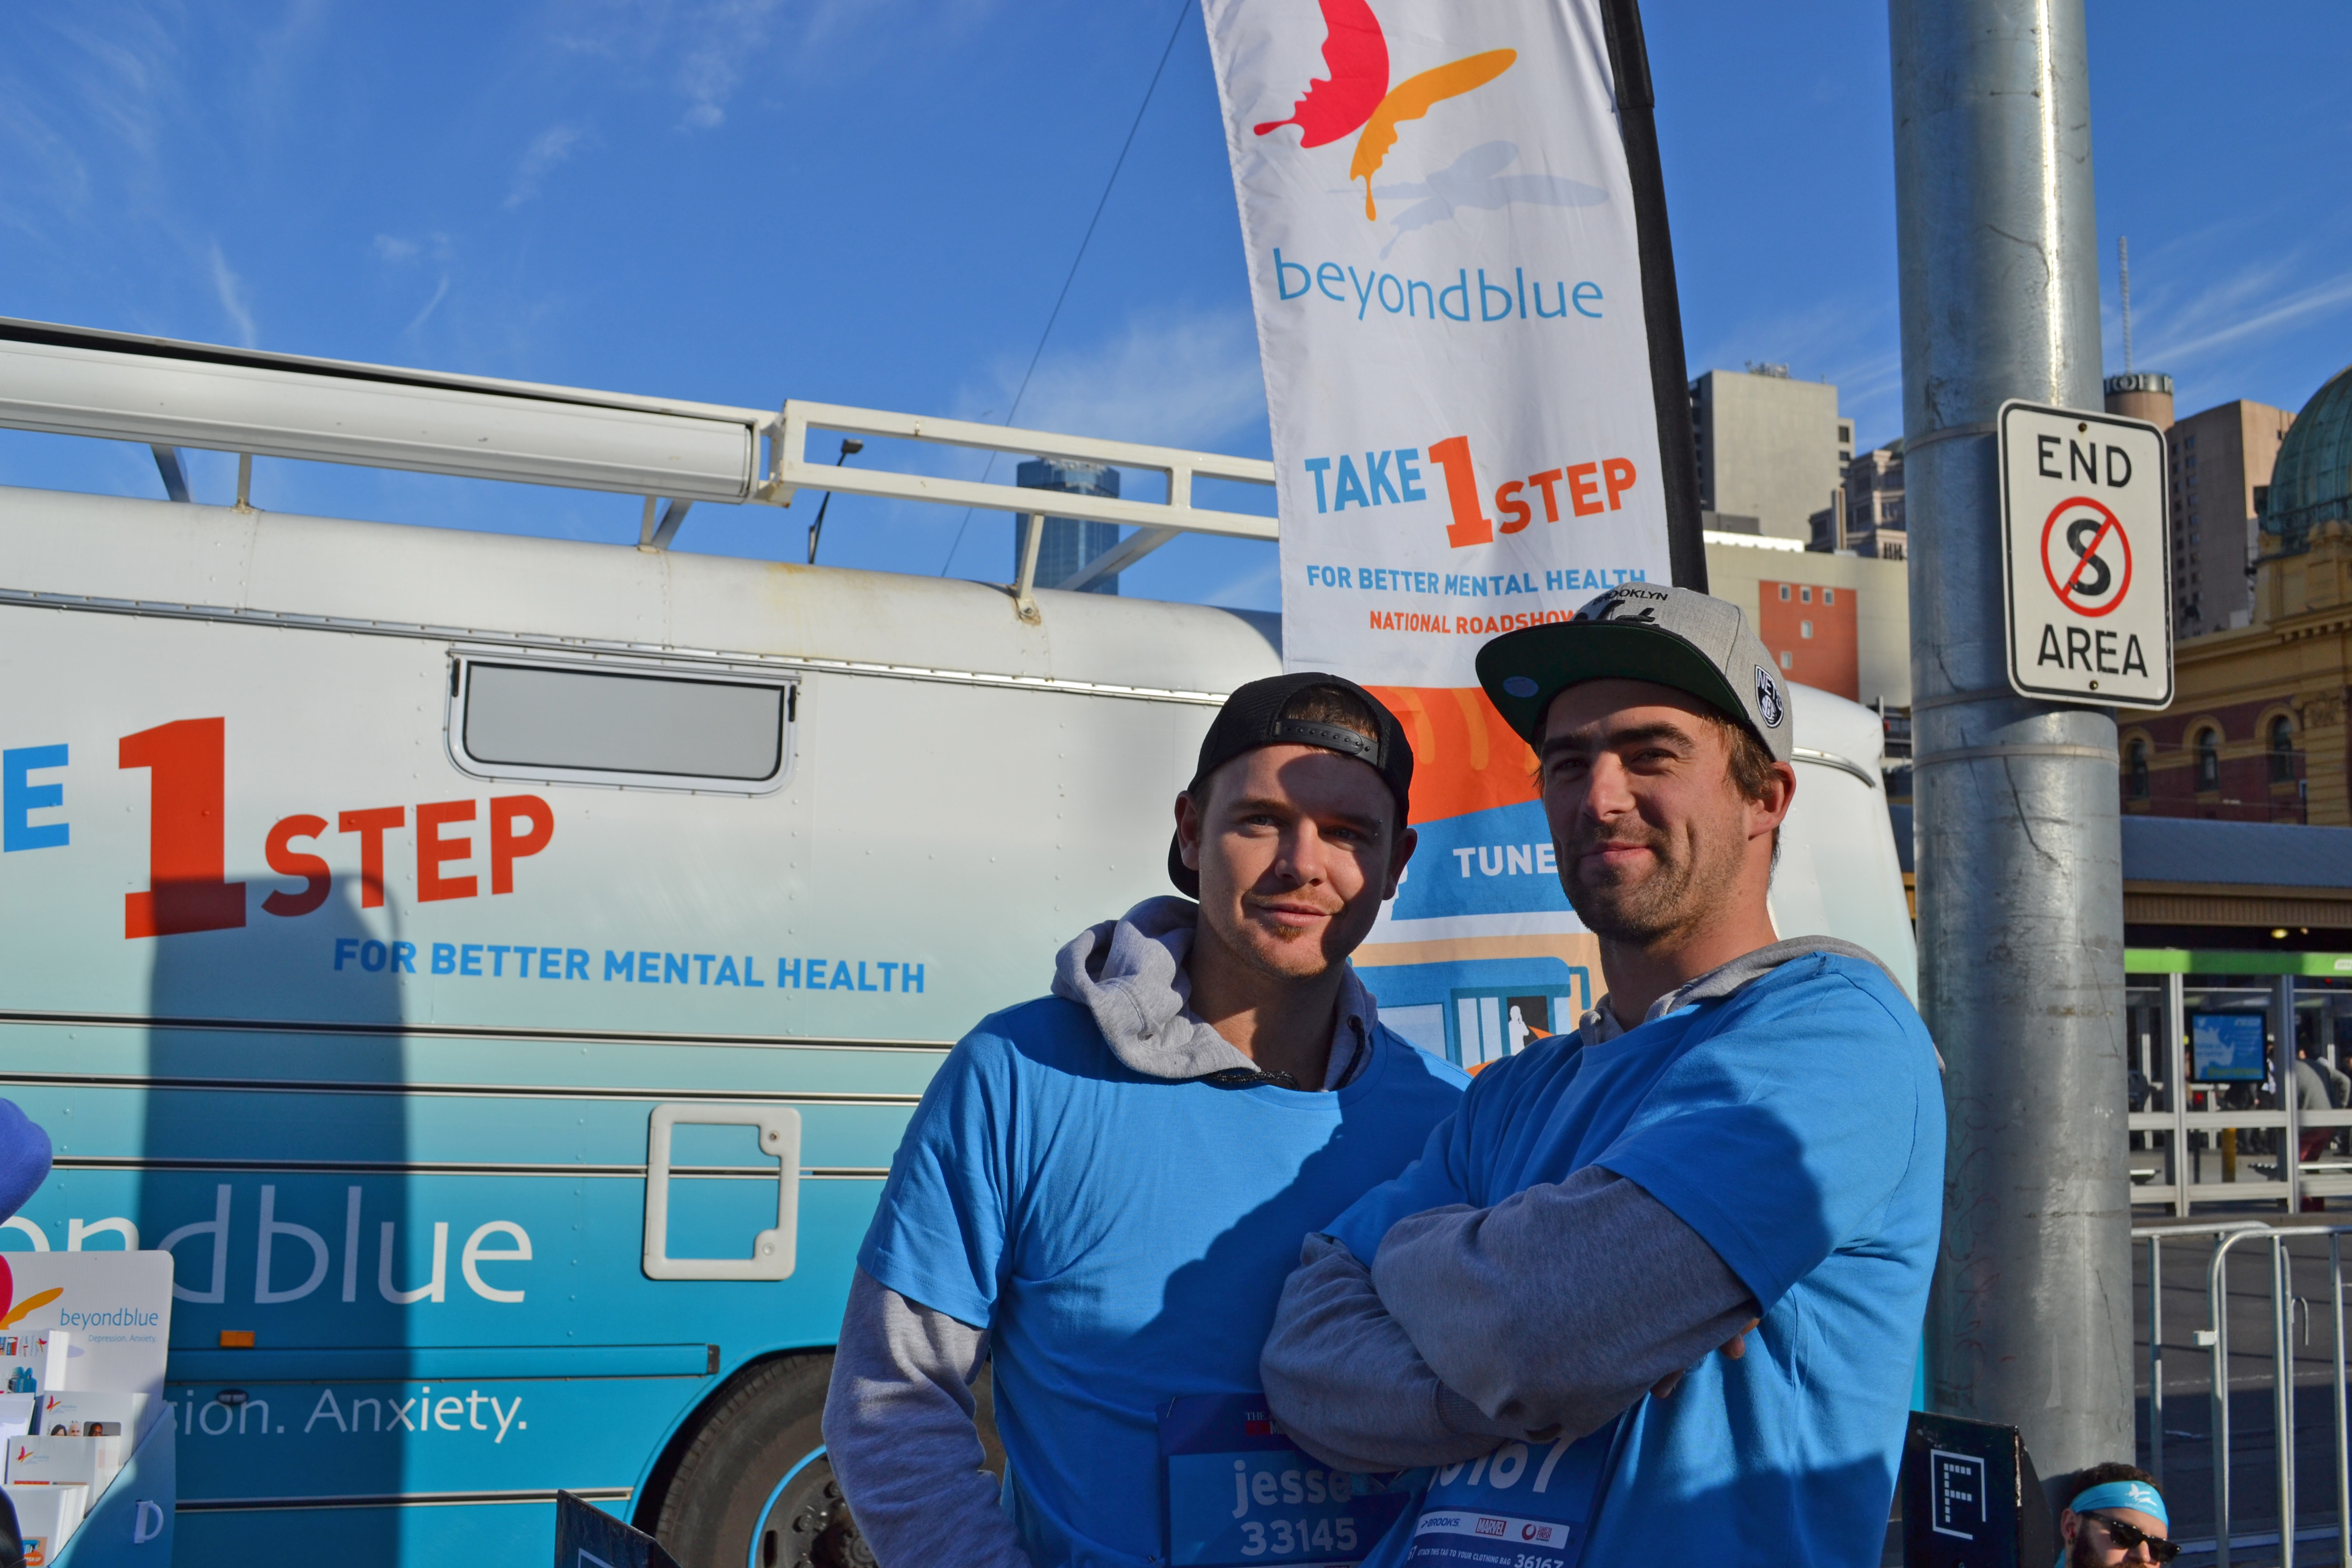 Mates 'Taking 1 step' with Beyond Blue.